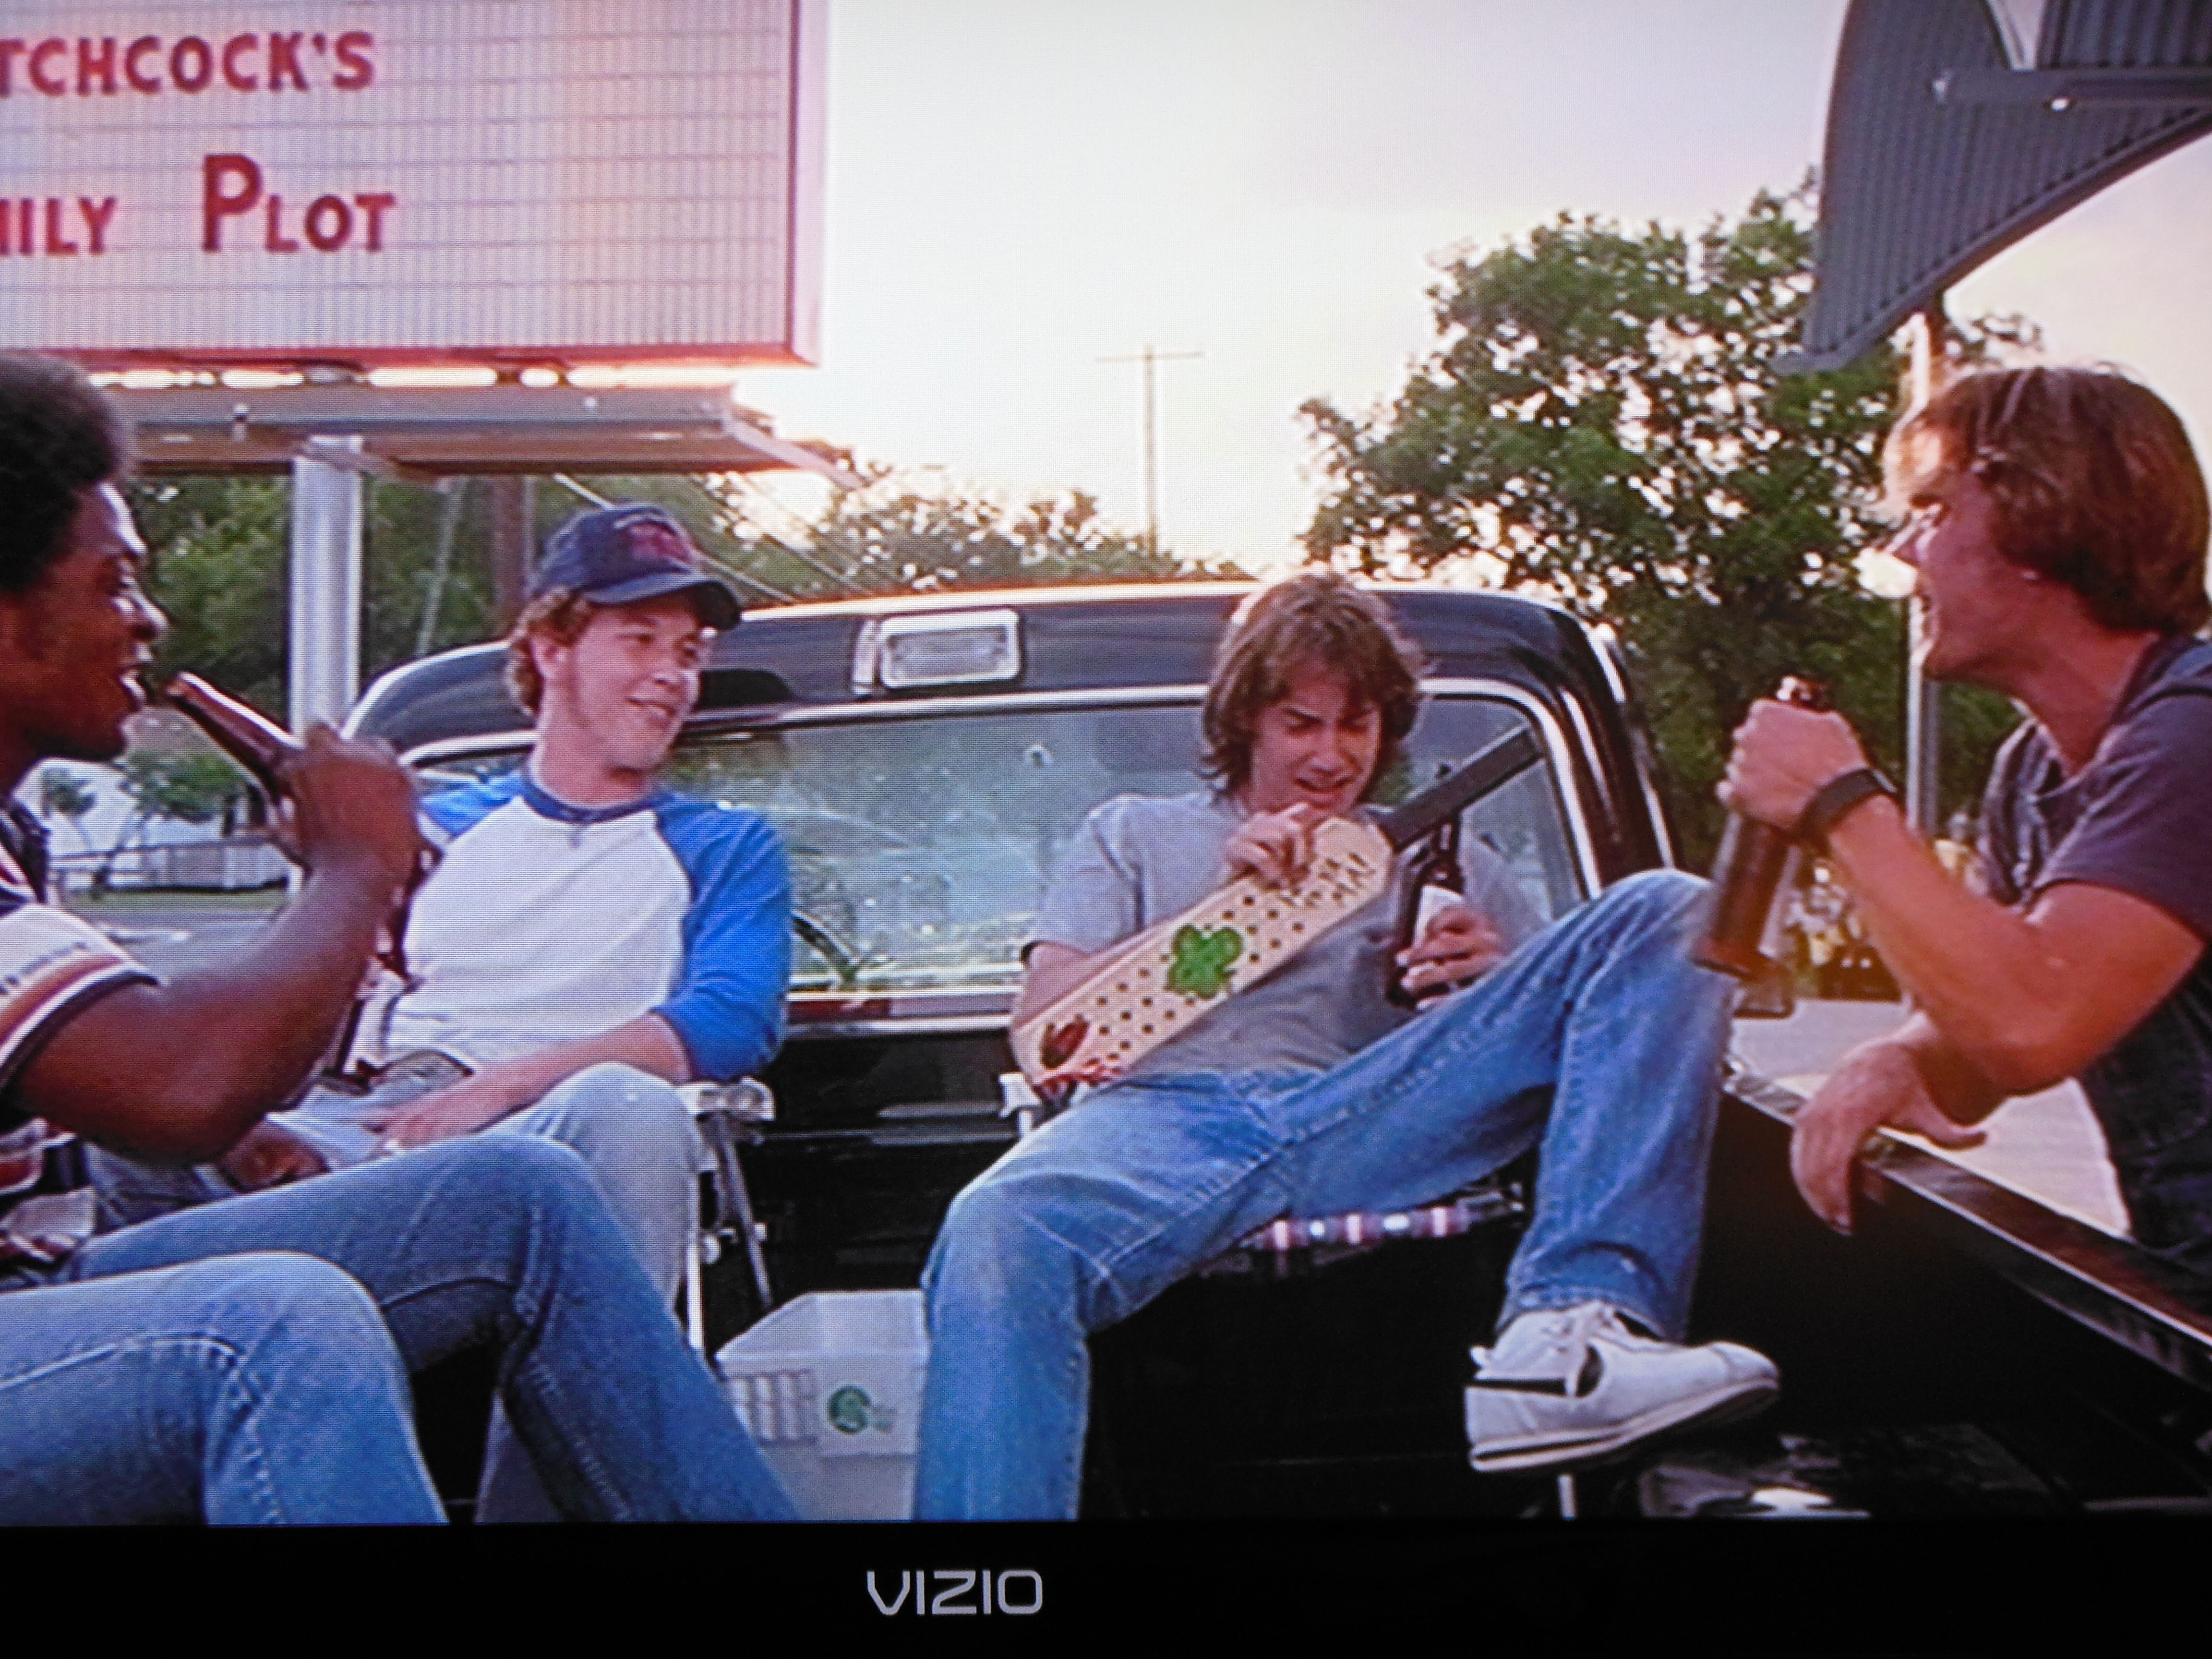 benny dazed and confused